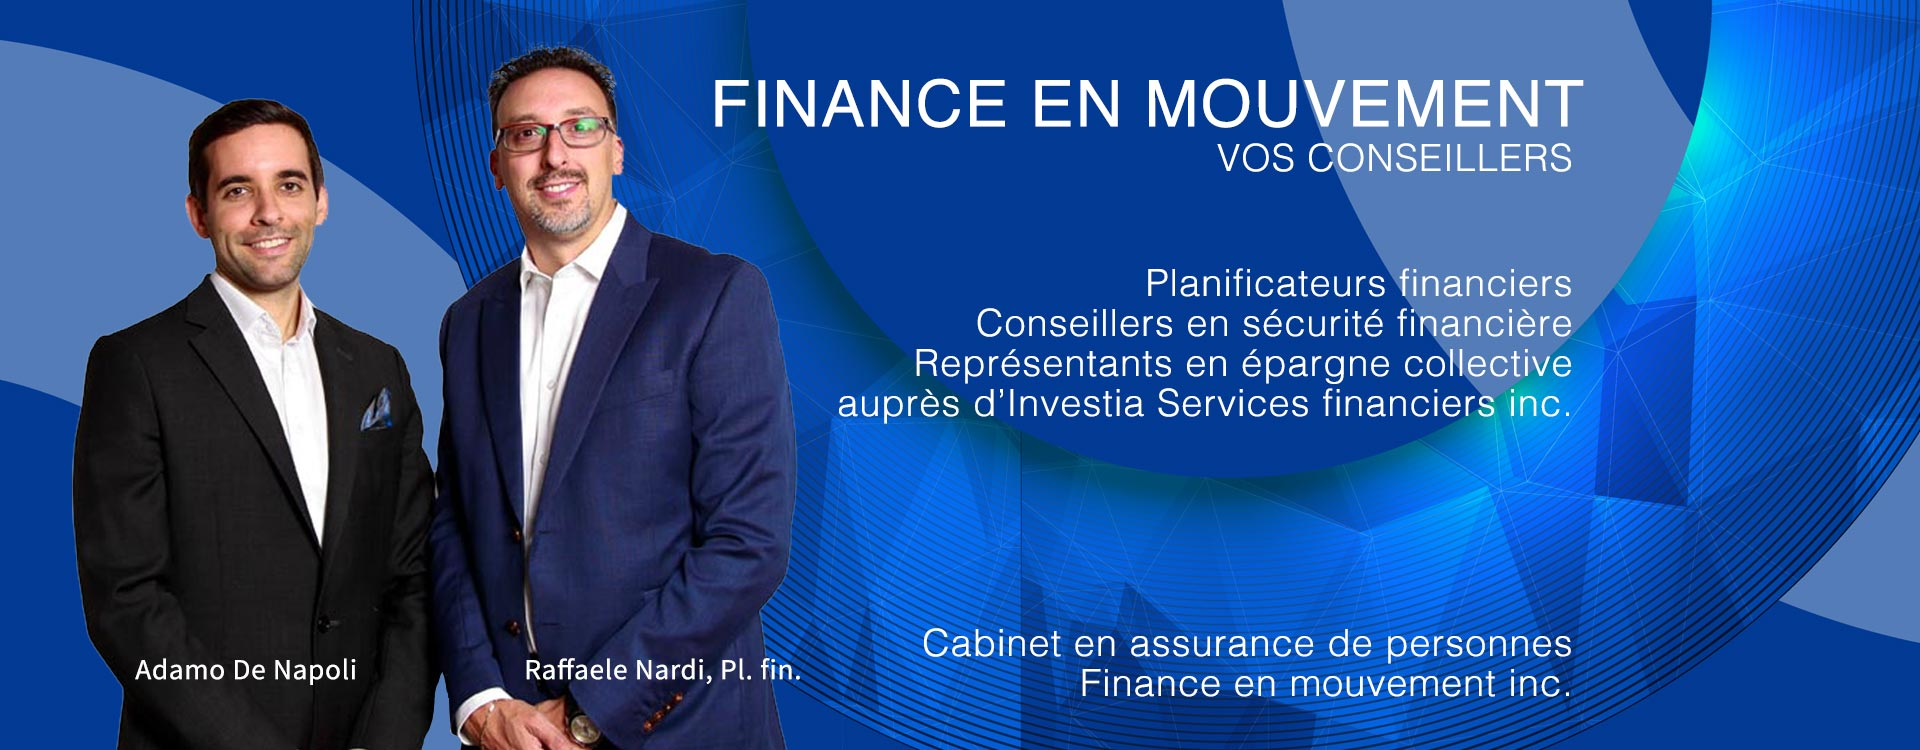 Finance en mouvement conseils financiers